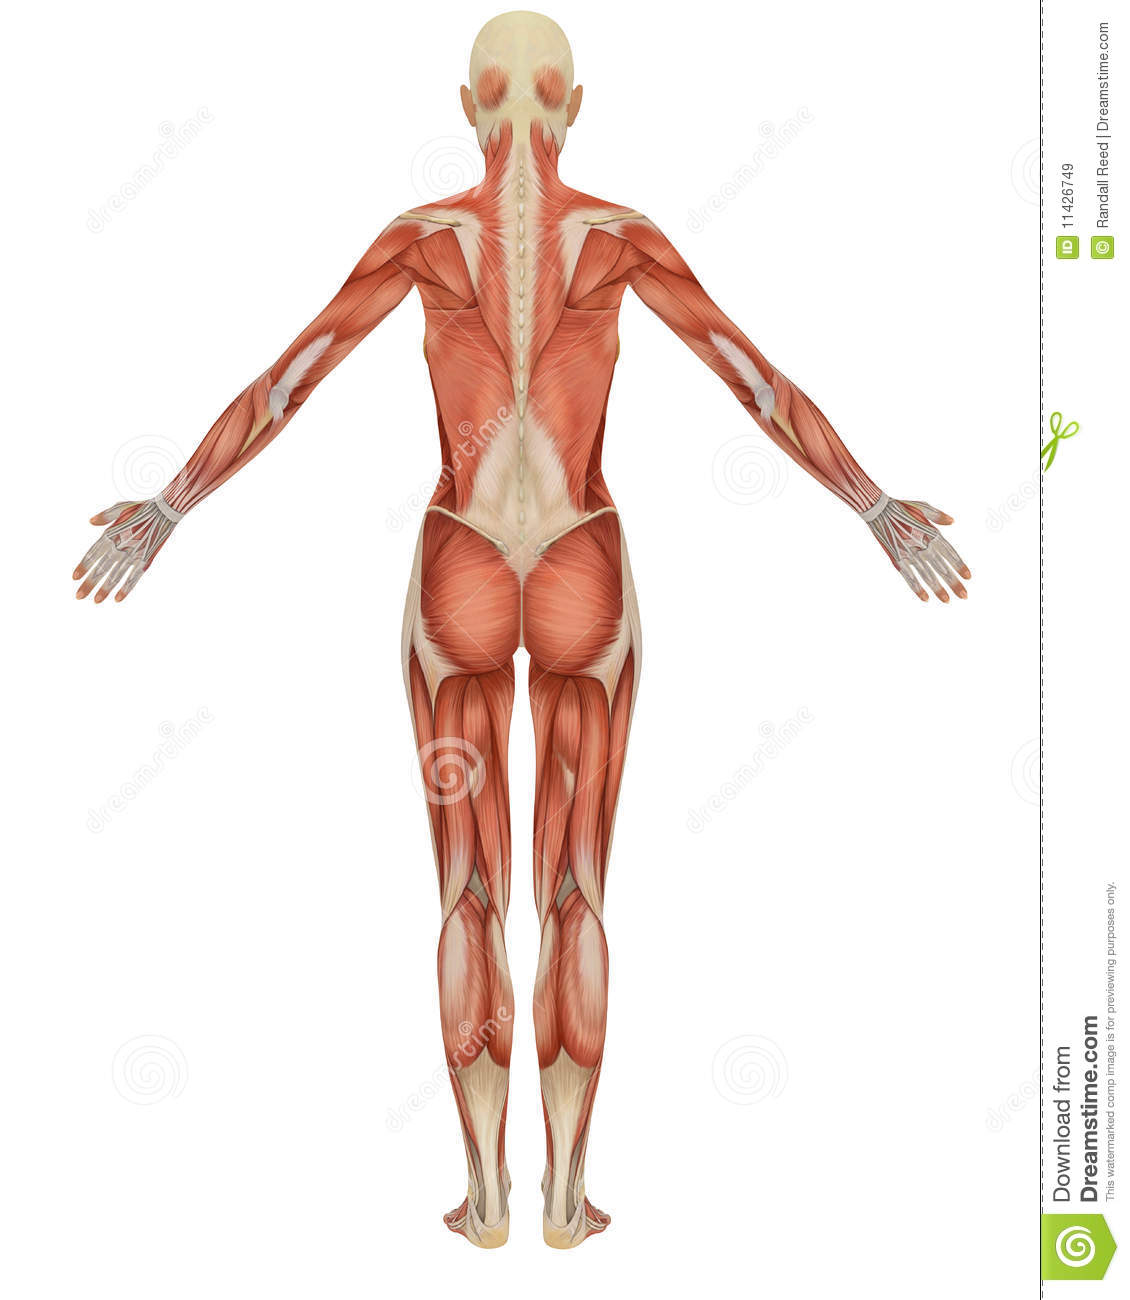 female muscular anatomy rear view royalty free stock images, Muscles